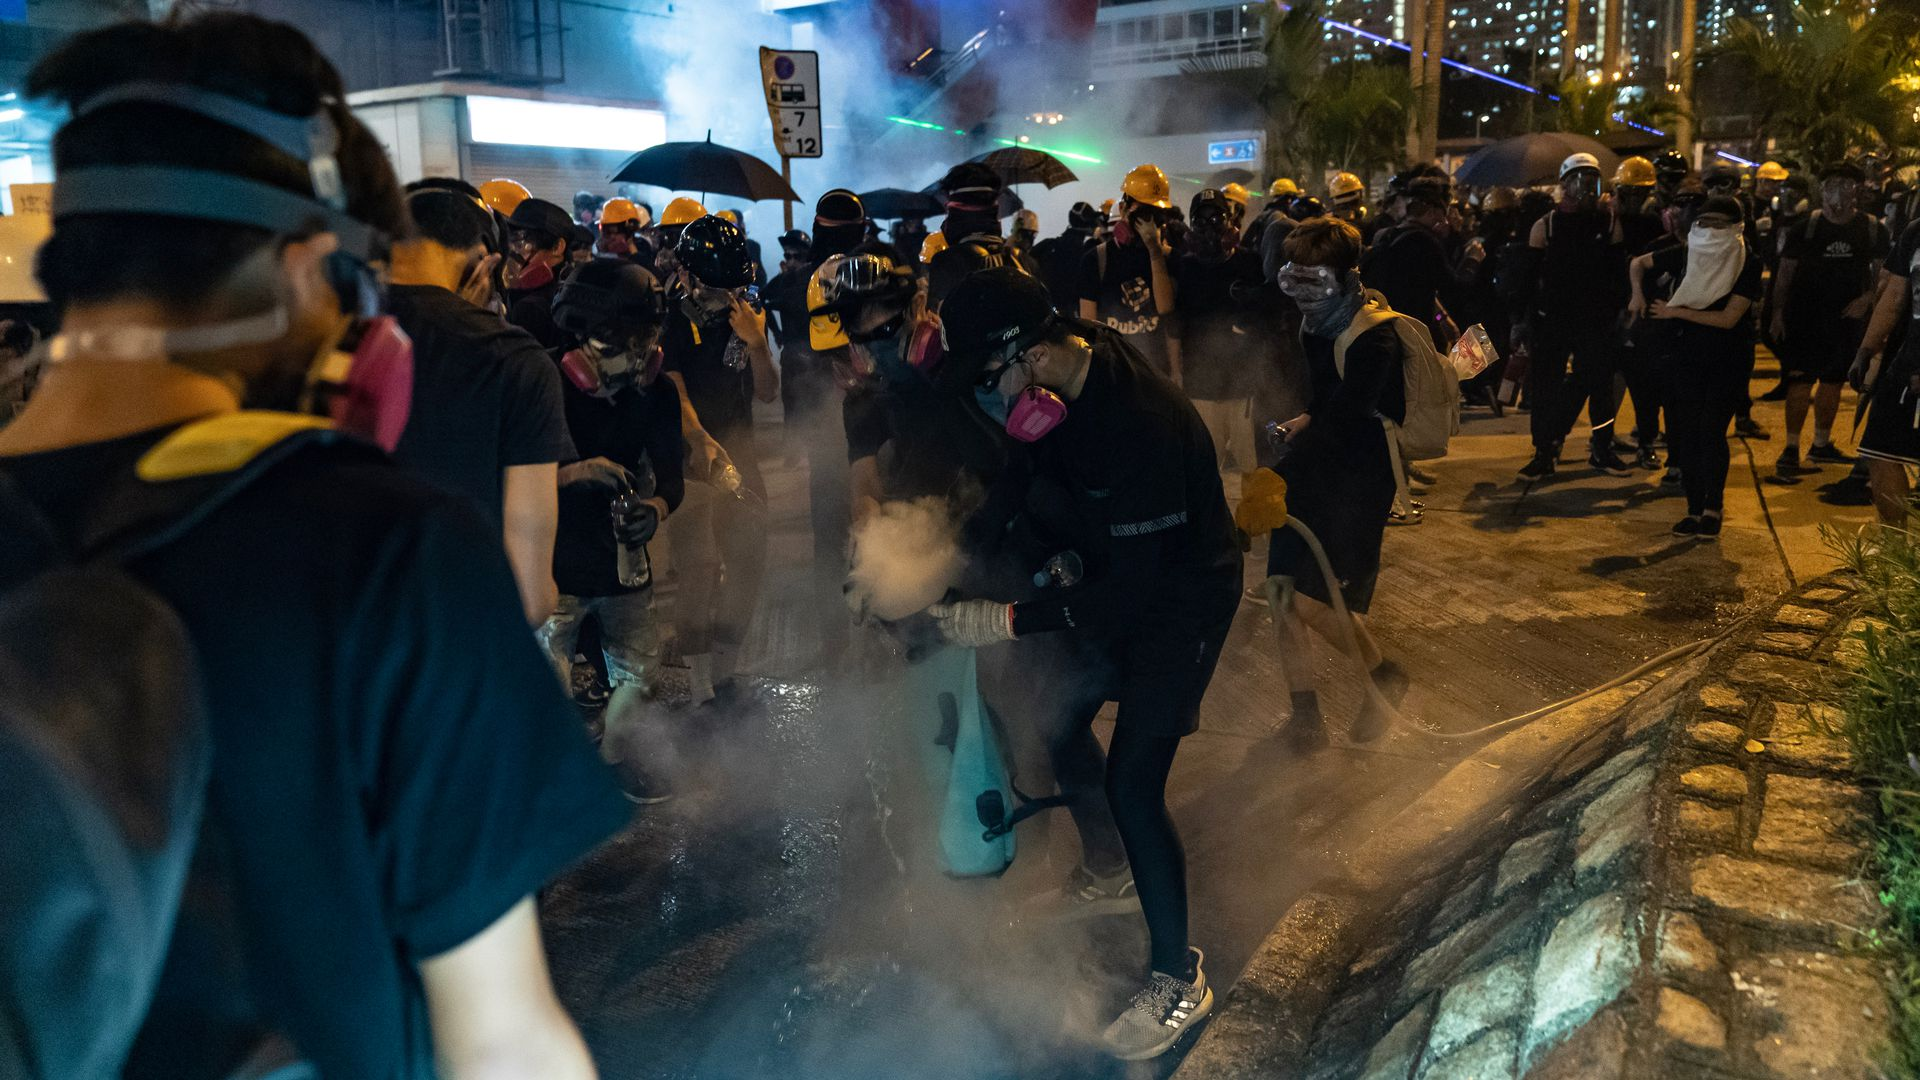 Protesters attempt to put off a tear gas canister during a clash with police in Wong Tai Sin district on August 24, 2019 in Hong Kong